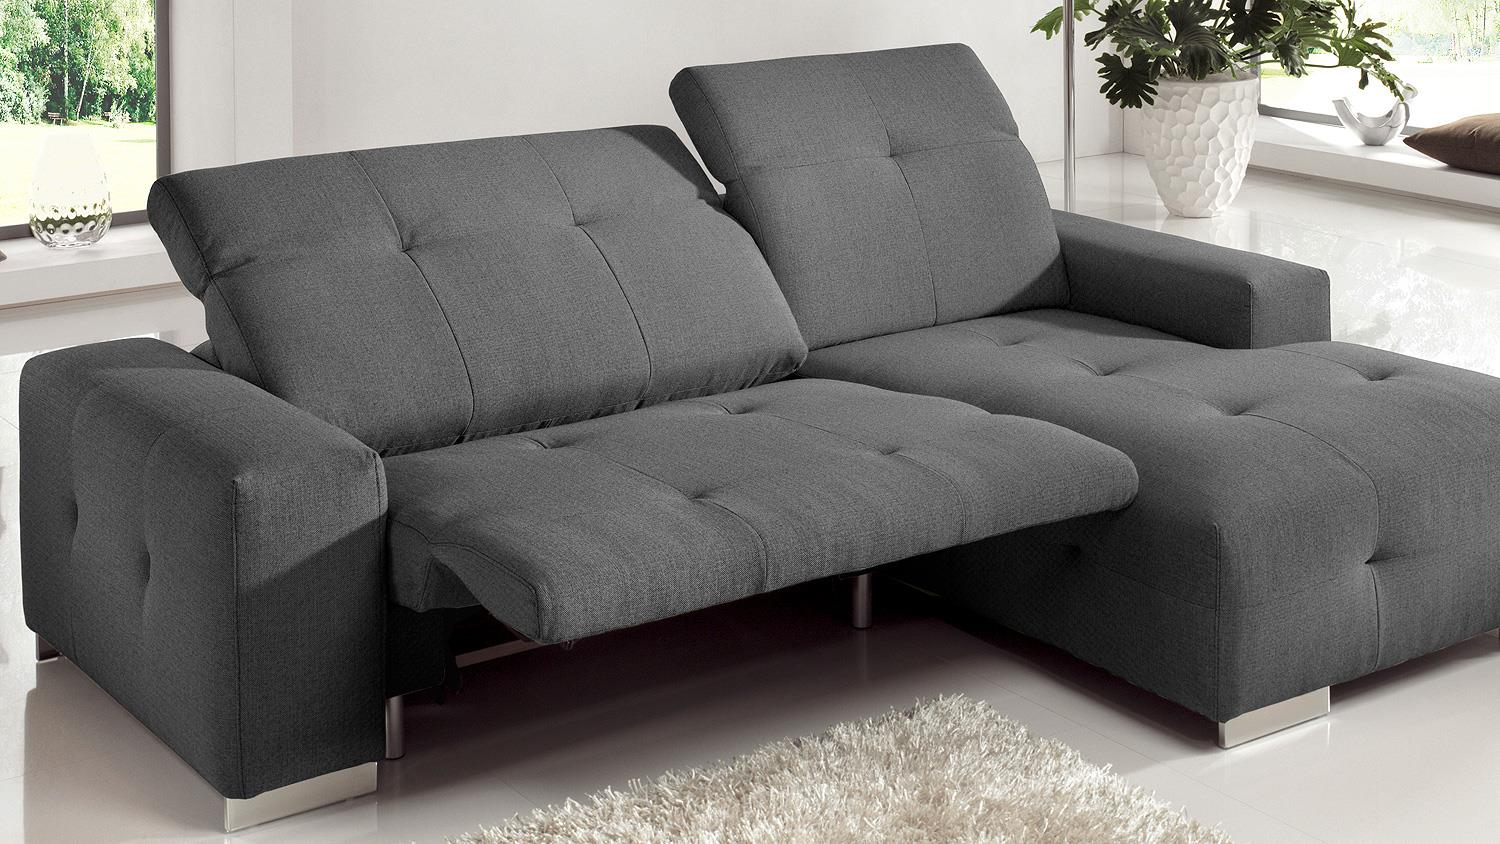 elektrisches sofa eckventil waschmaschine. Black Bedroom Furniture Sets. Home Design Ideas